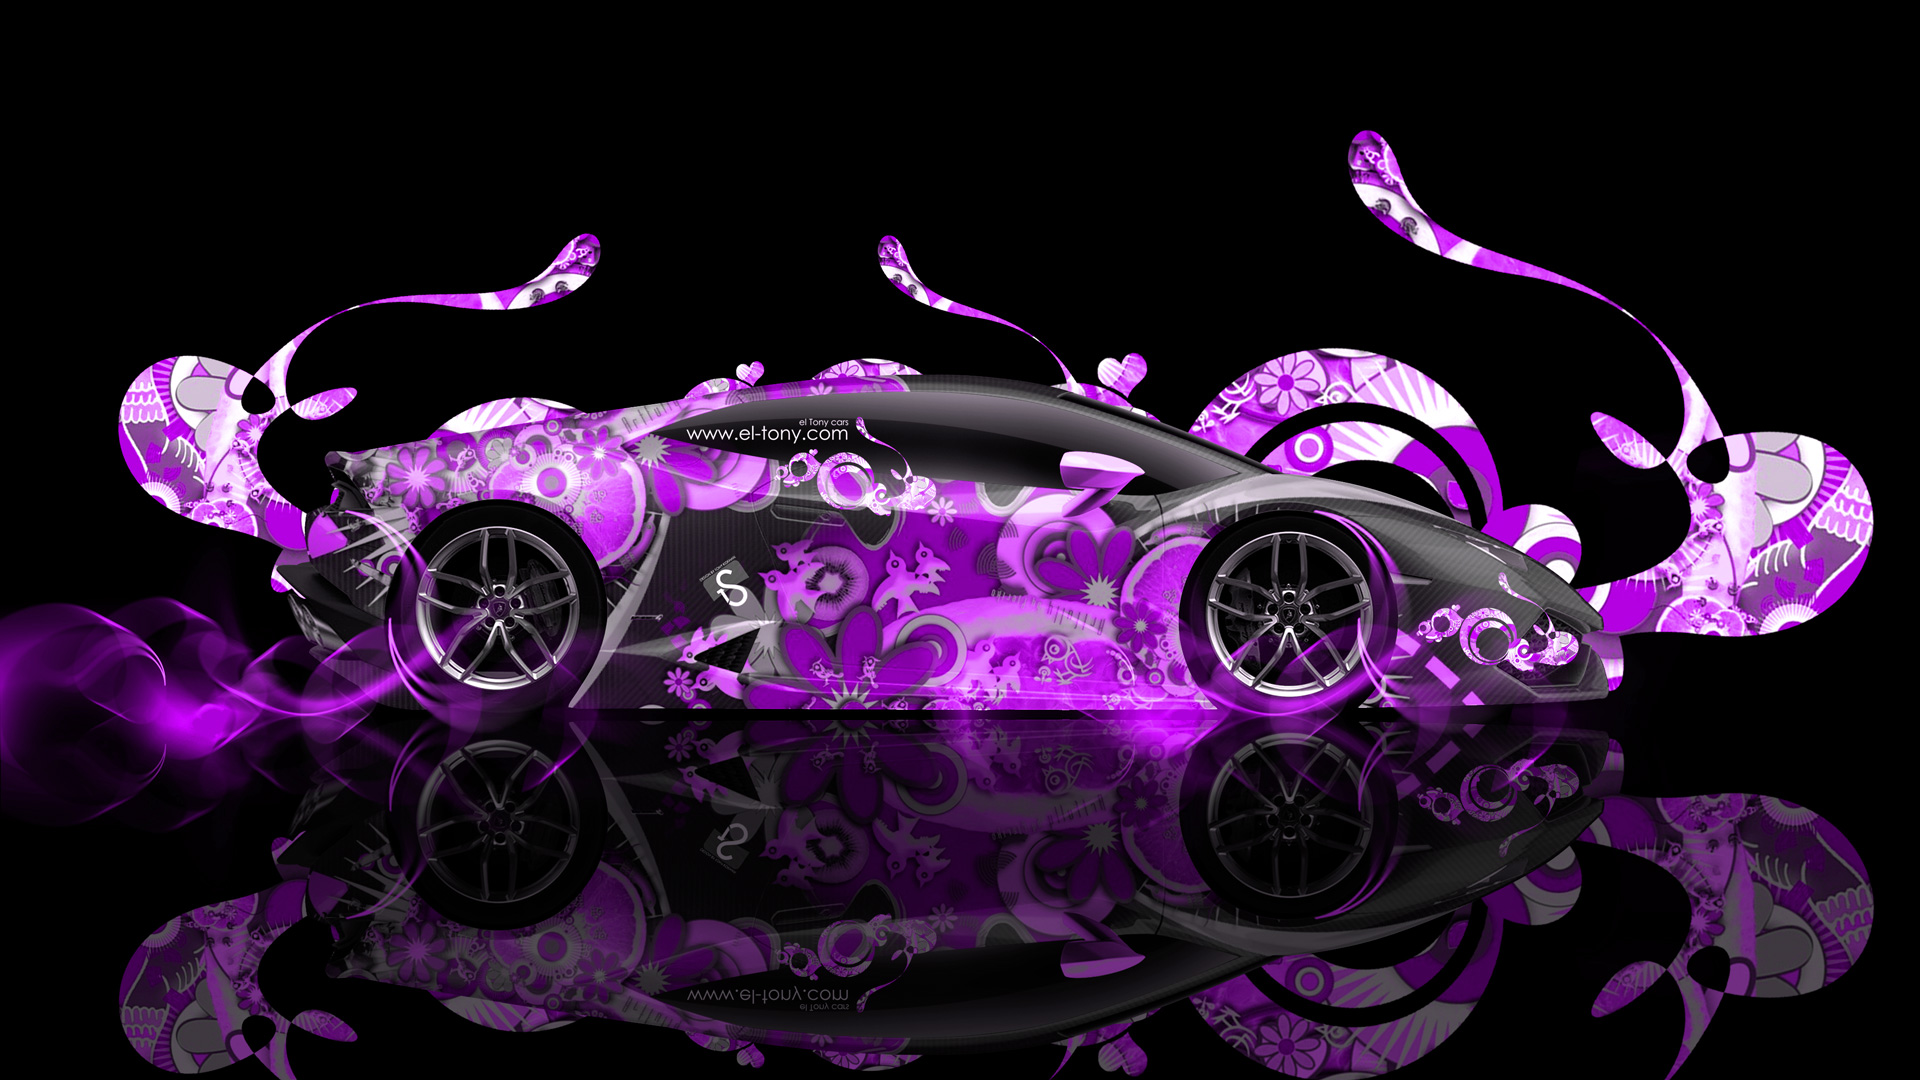 Lamborghini Huracan Super Abstract Car 2014 El Tony